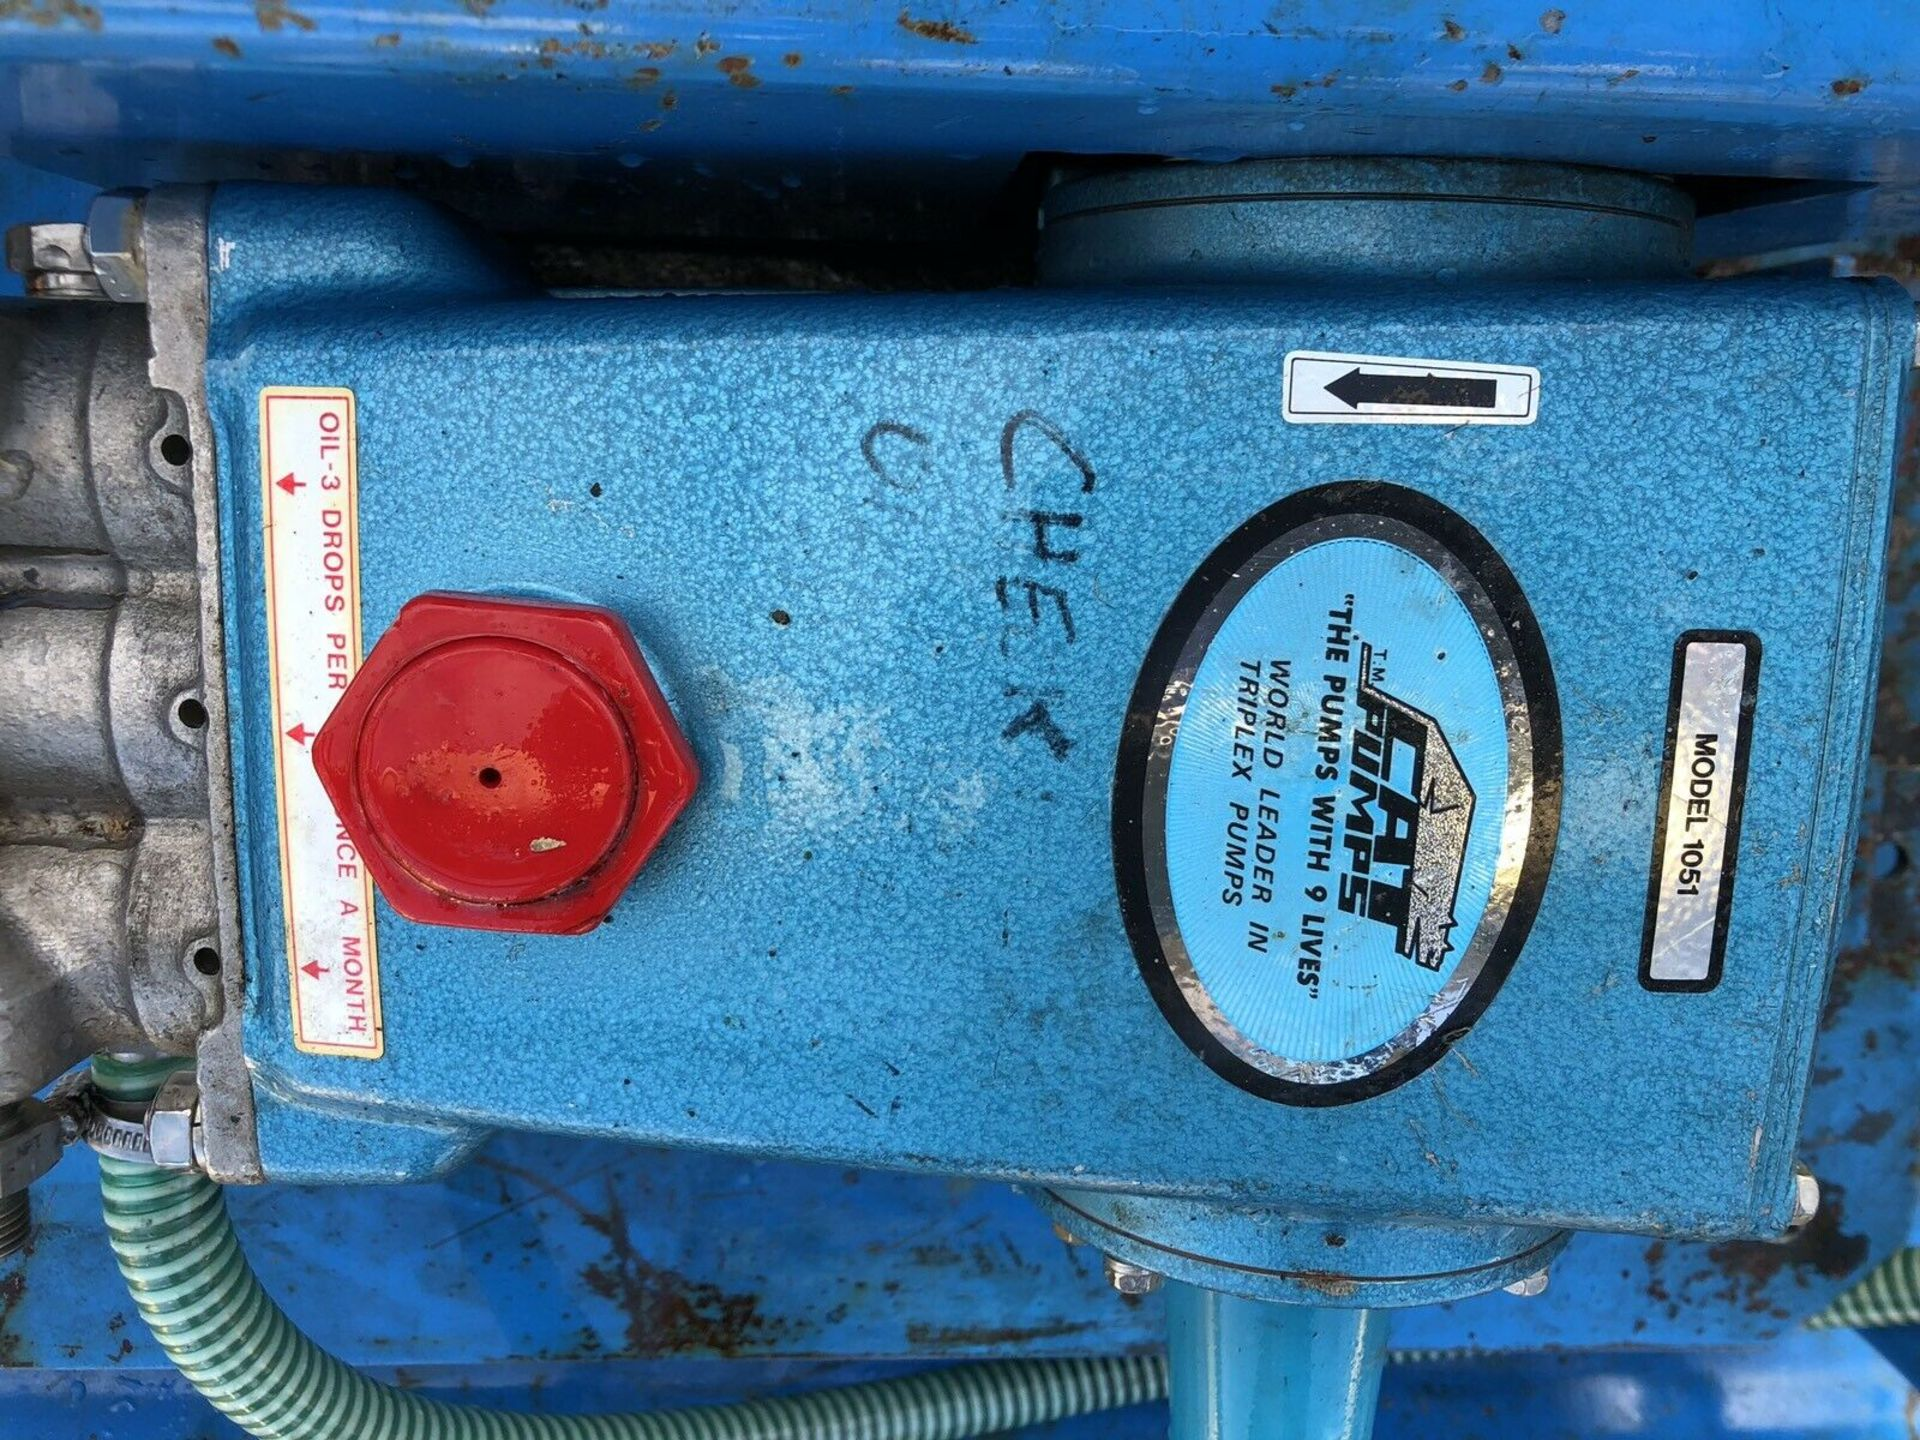 Lot 101 - RUGGERINI 2 CYLINDER ELECTRIC START DIESEL JET WASH, CAT1051 PUMP (2200 PSI, 10GPM) VERY LITTLE USE